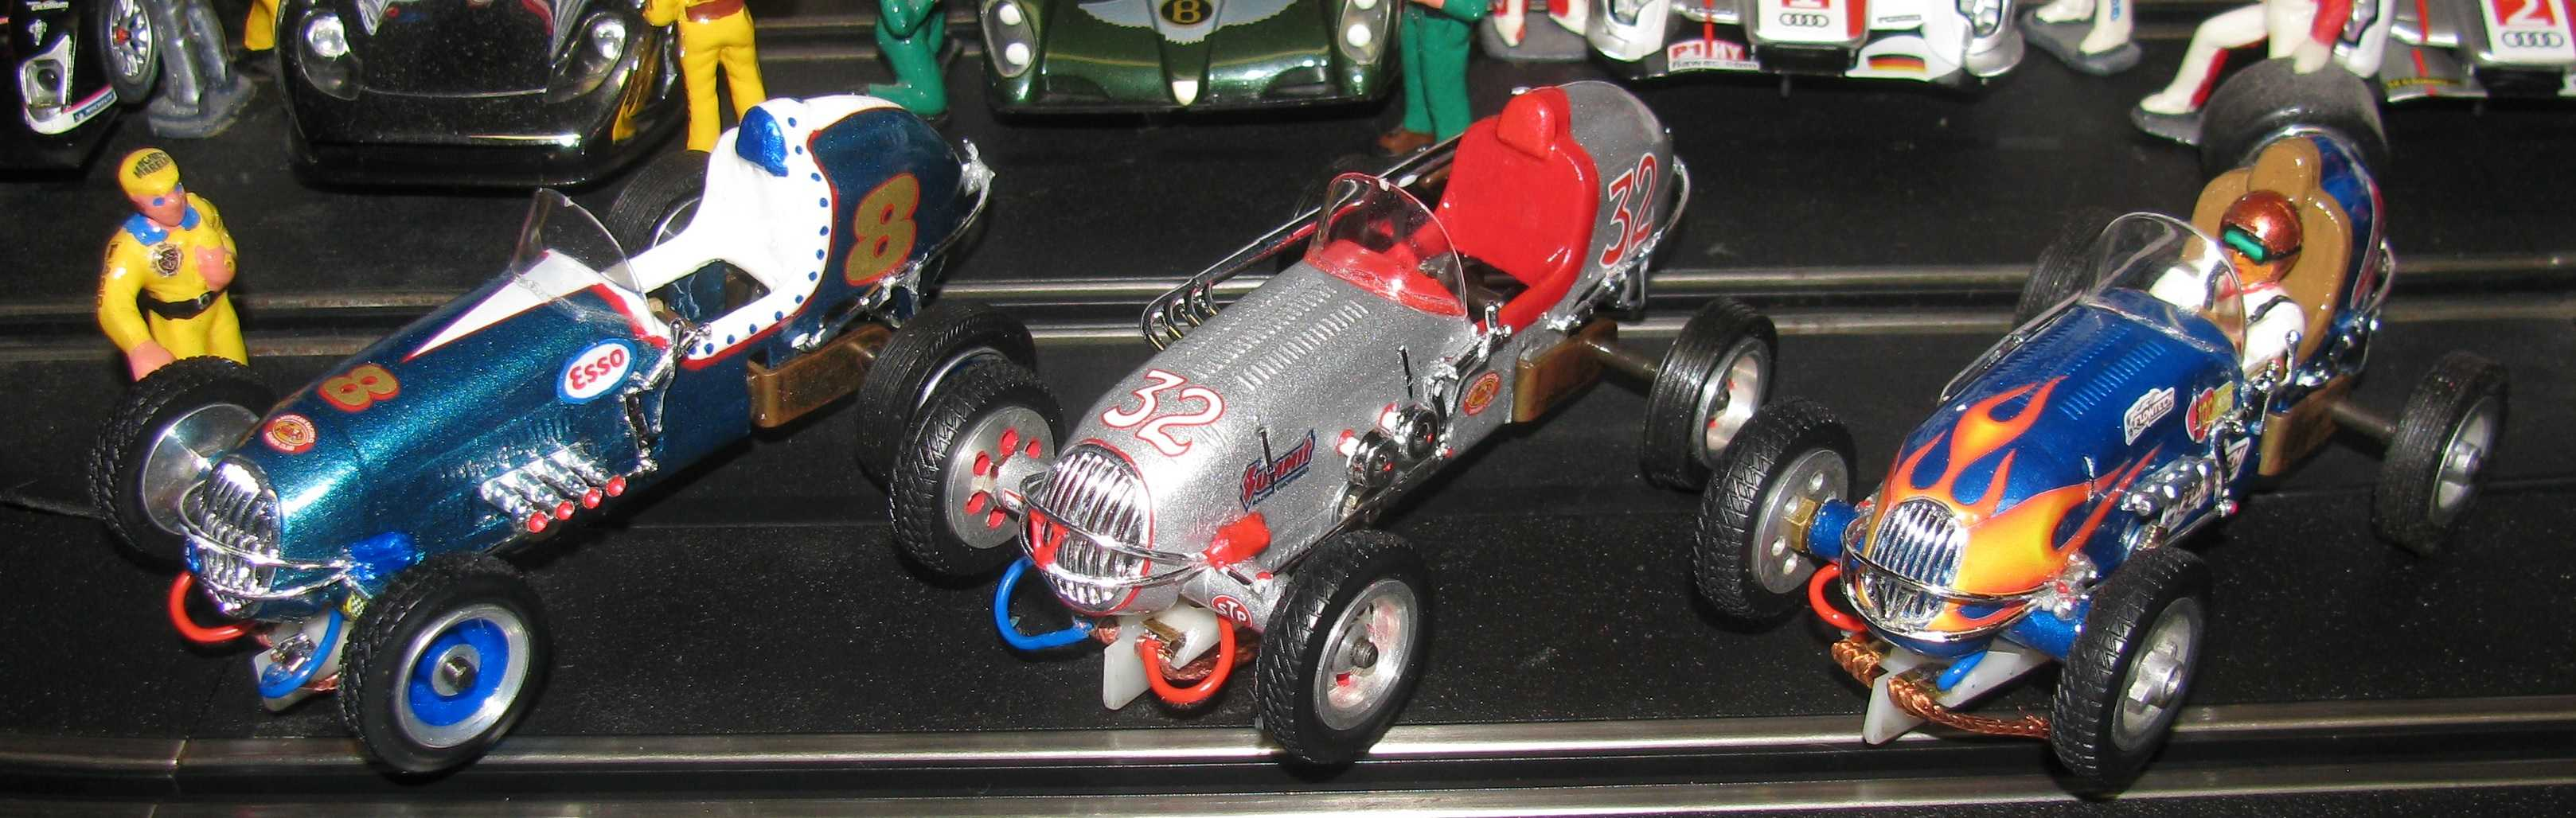 * SOLD * * SPECIAL FOR CHARLES E. ONLY * 3 Revell Midget Racers -Cars  #8, #32 & #4 – 1:32 Scale